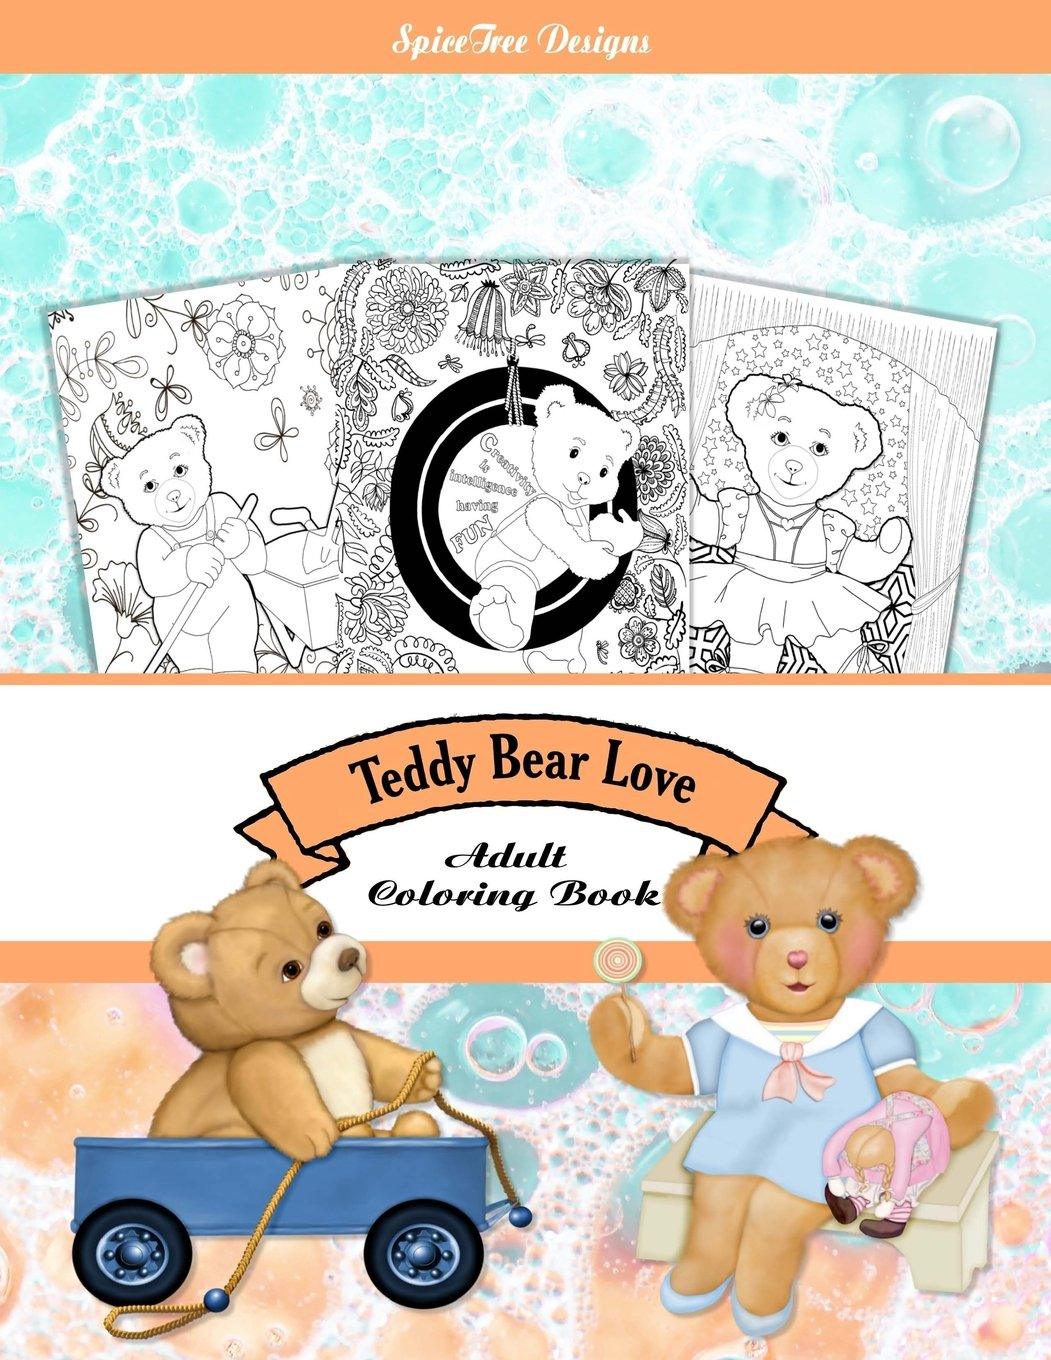 teddy bear love adult coloring book colorist fun for everyone jacqueline edwards 9781530746156 amazoncom books - Amazon Adult Coloring Books